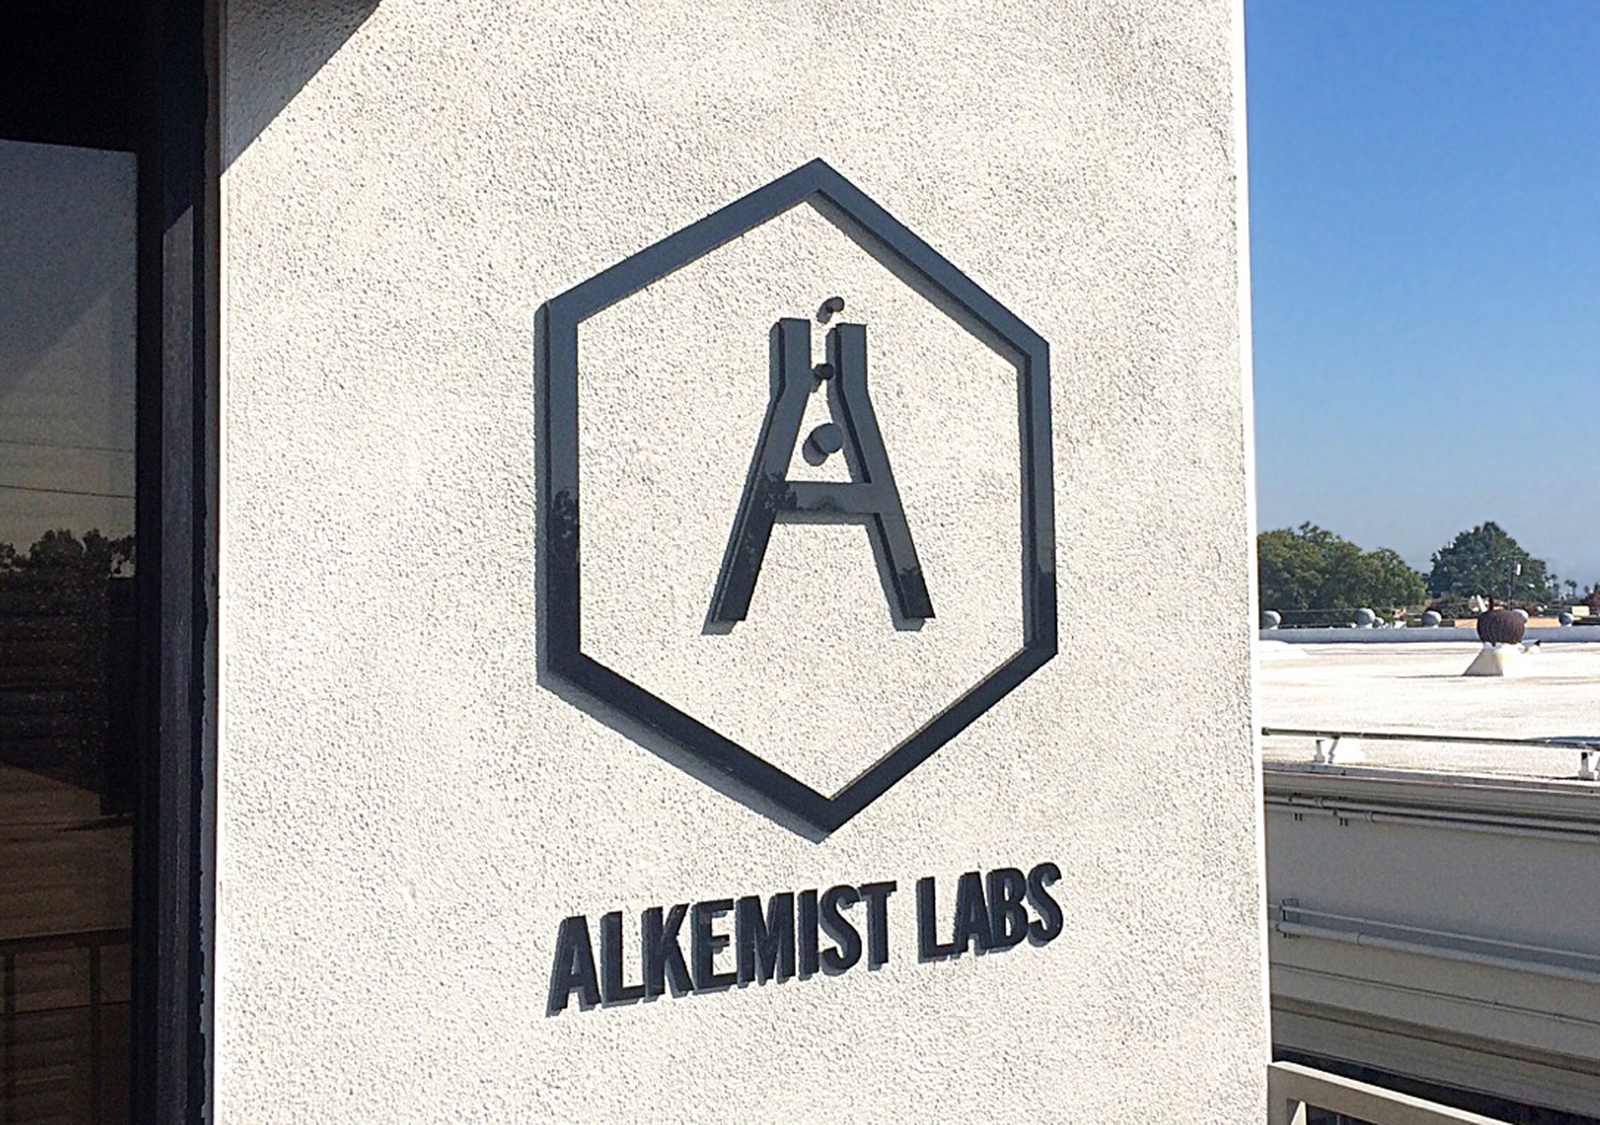 mslk-alkemist-outdoor-signage